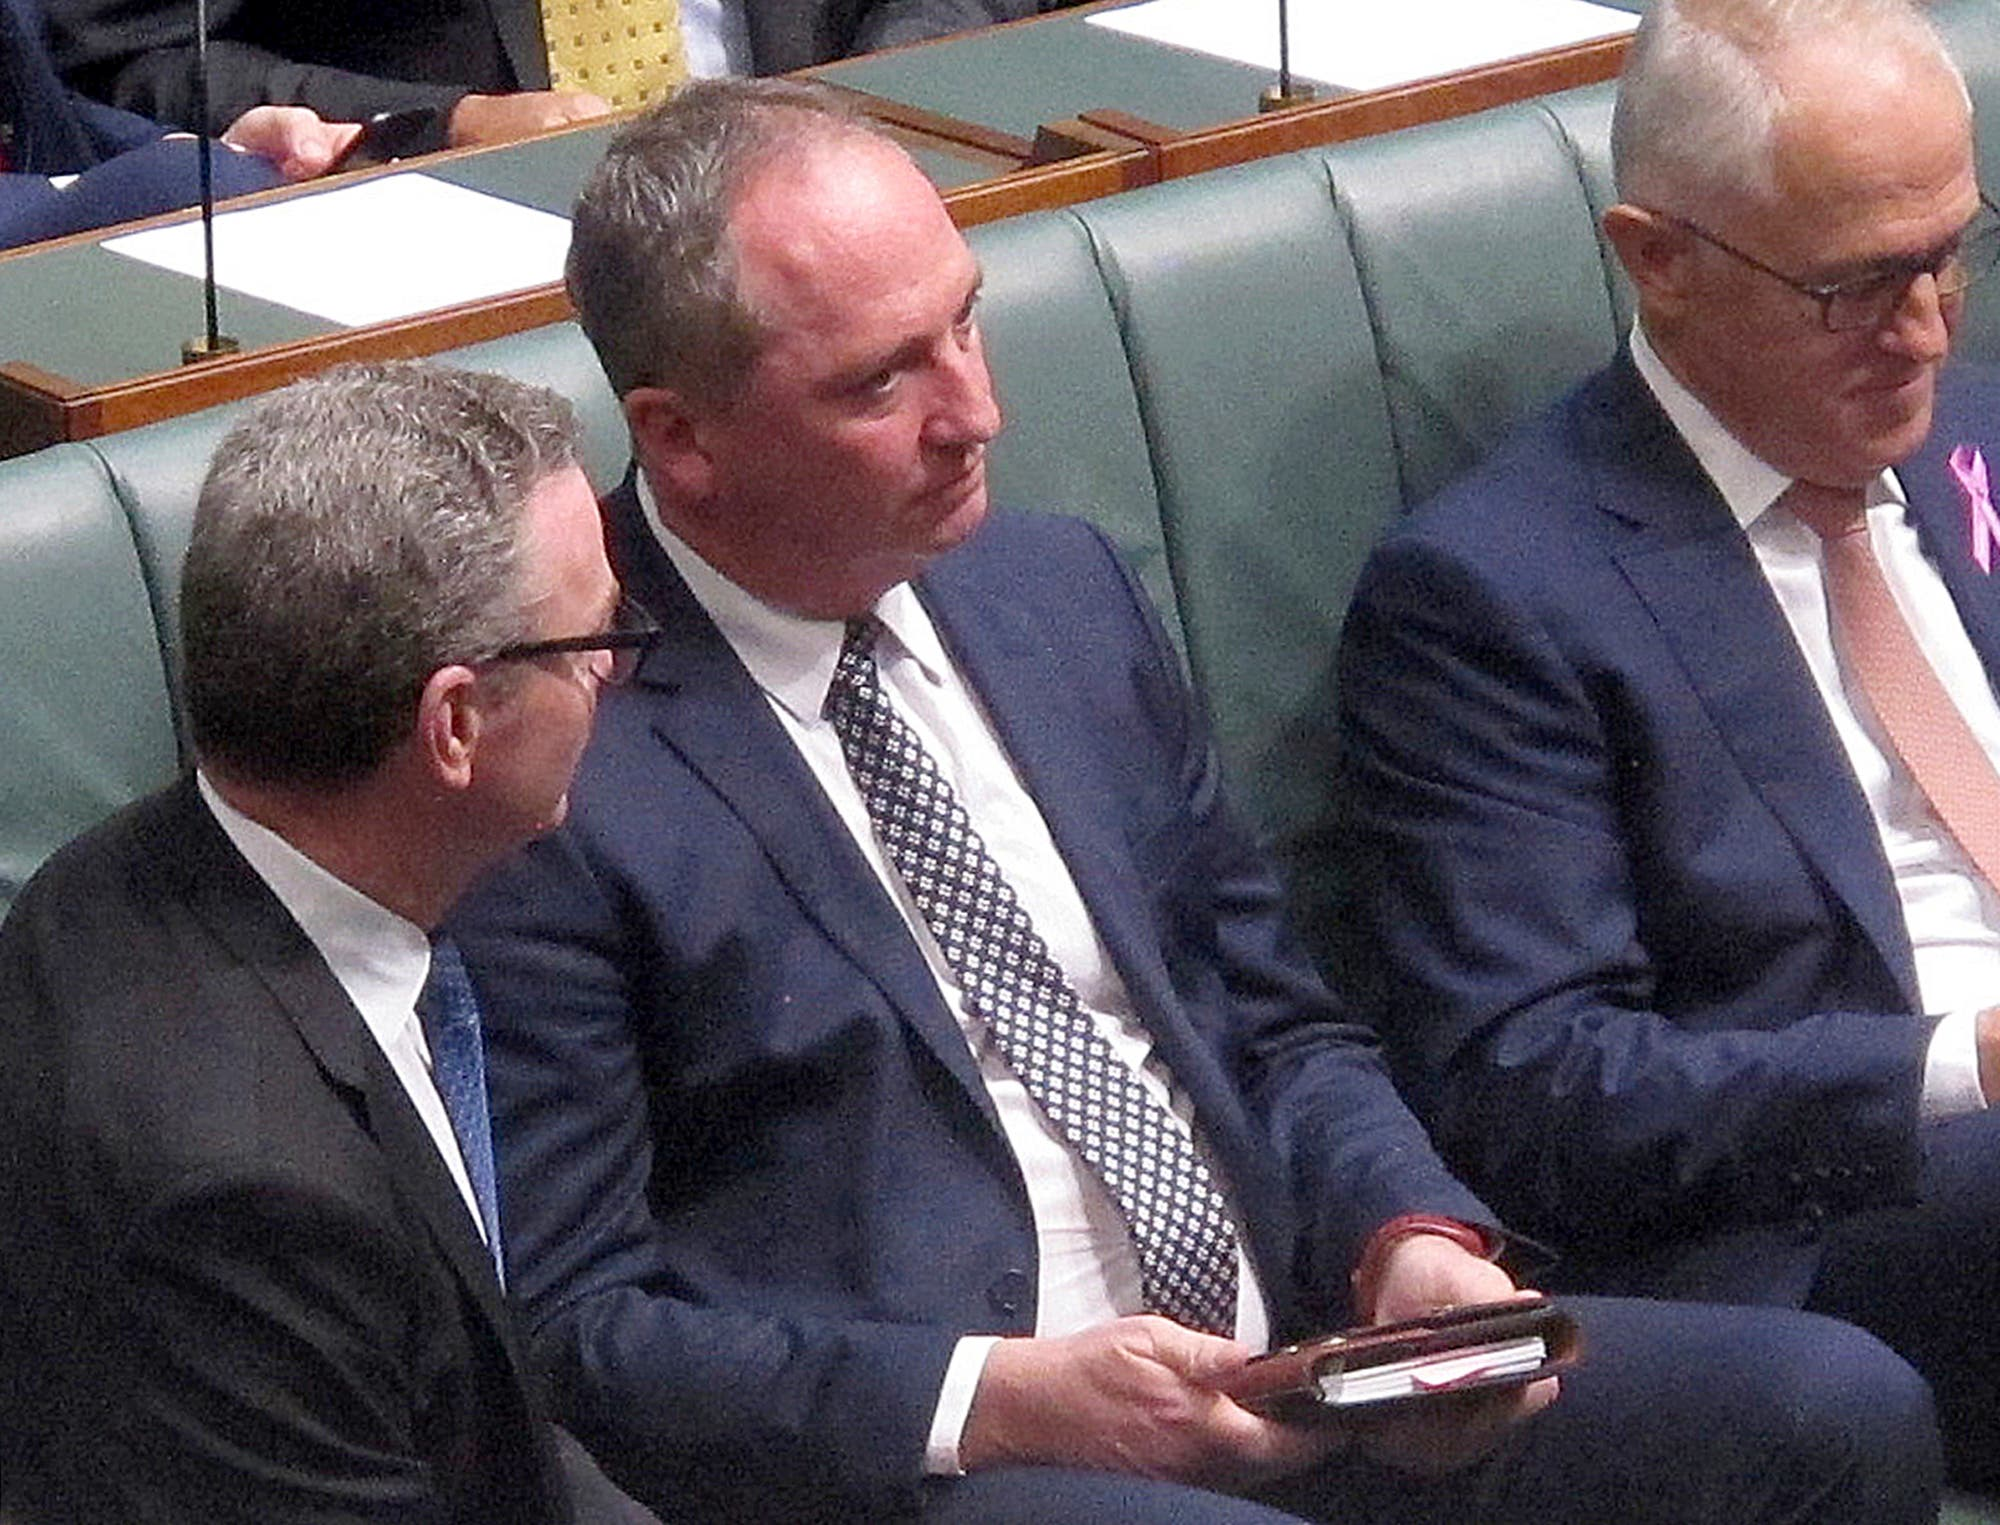 Former deputy Prime Minister Barnaby Joyce (center) ran into political strife in 2018 over revelations that he had impregnated a female staffer, who is now his partner, in an extramarital affair. (AP)